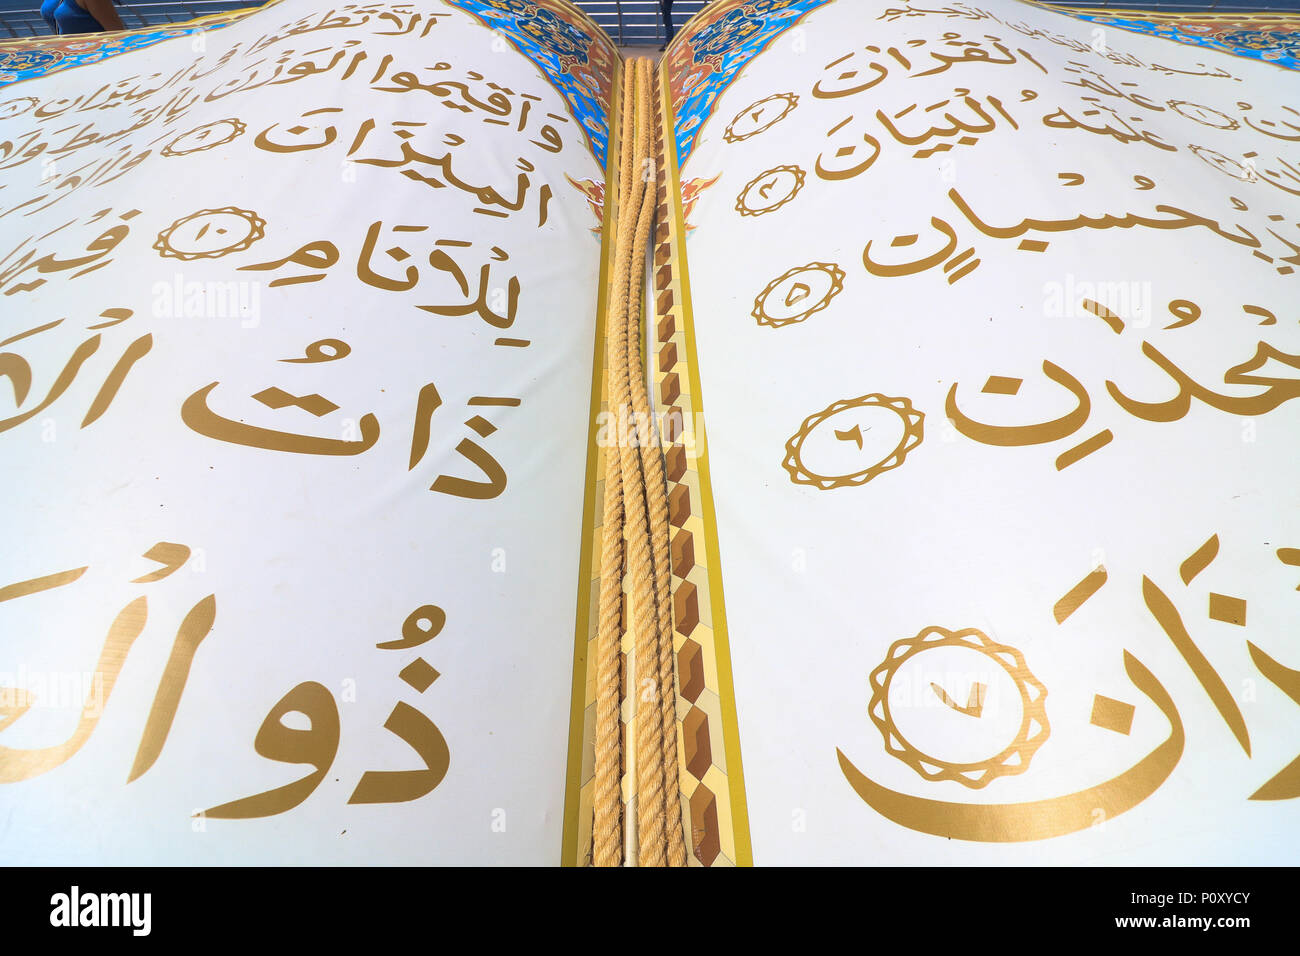 Beirut Lebanon 10th June A Large Opened Quran Book Is Displayed On The